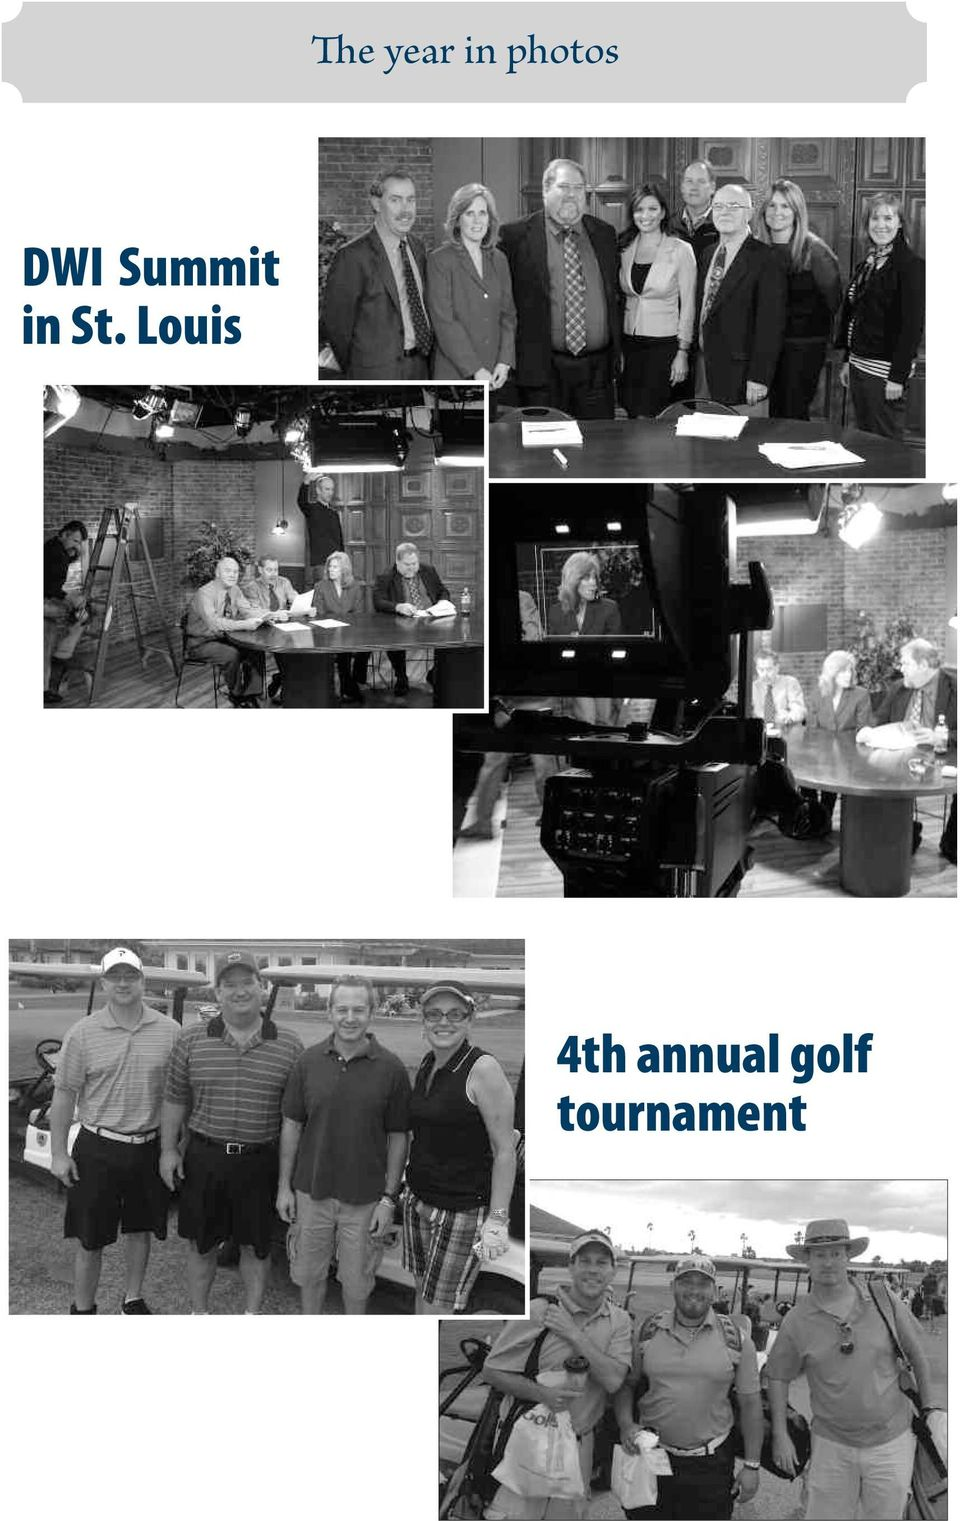 Louis 4th annual